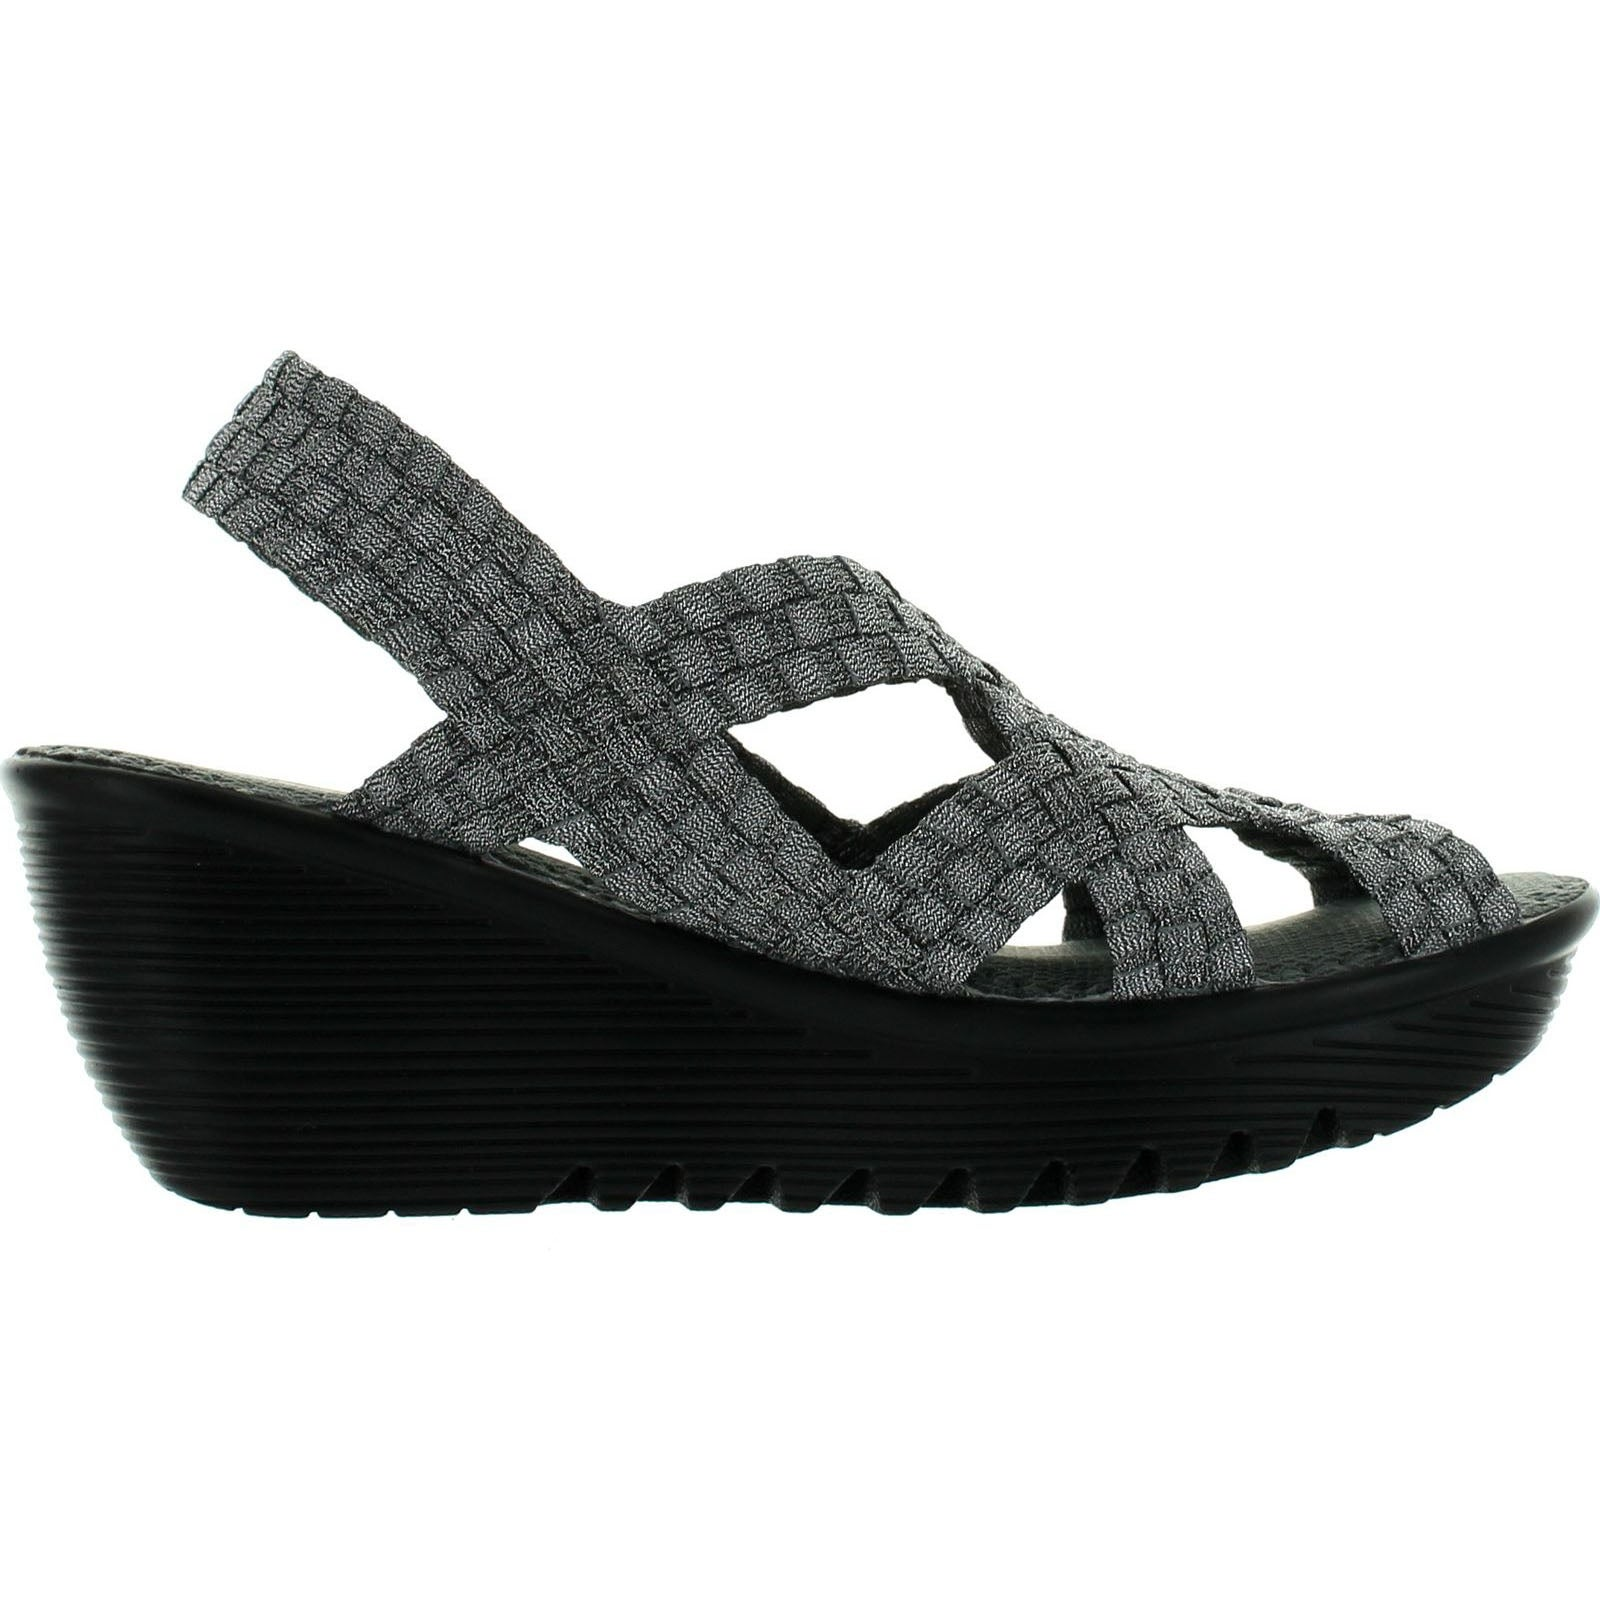 d07ee69079e Shop Bernie Mev Womens Contour Wedge Sandals - Free Shipping Today -  Overstock - 14339636